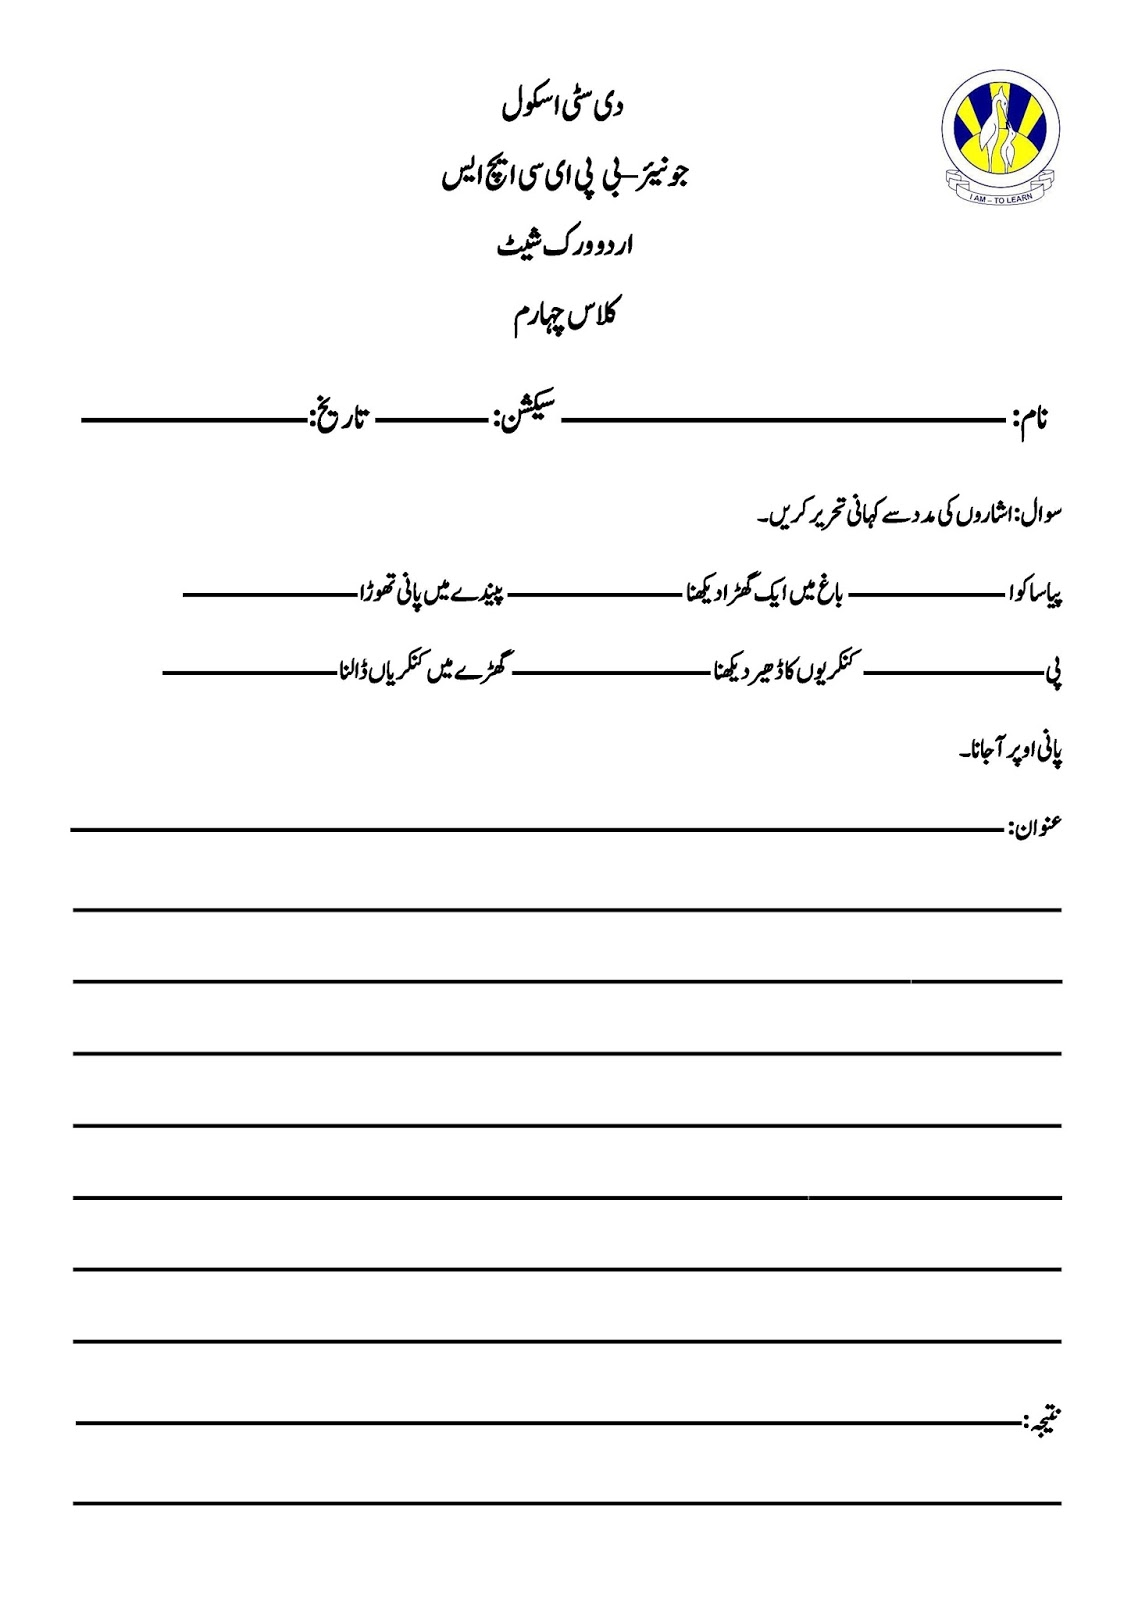 worksheet Free English Worksheets For Year 4 the city school worksheet for class 4 science s t english school